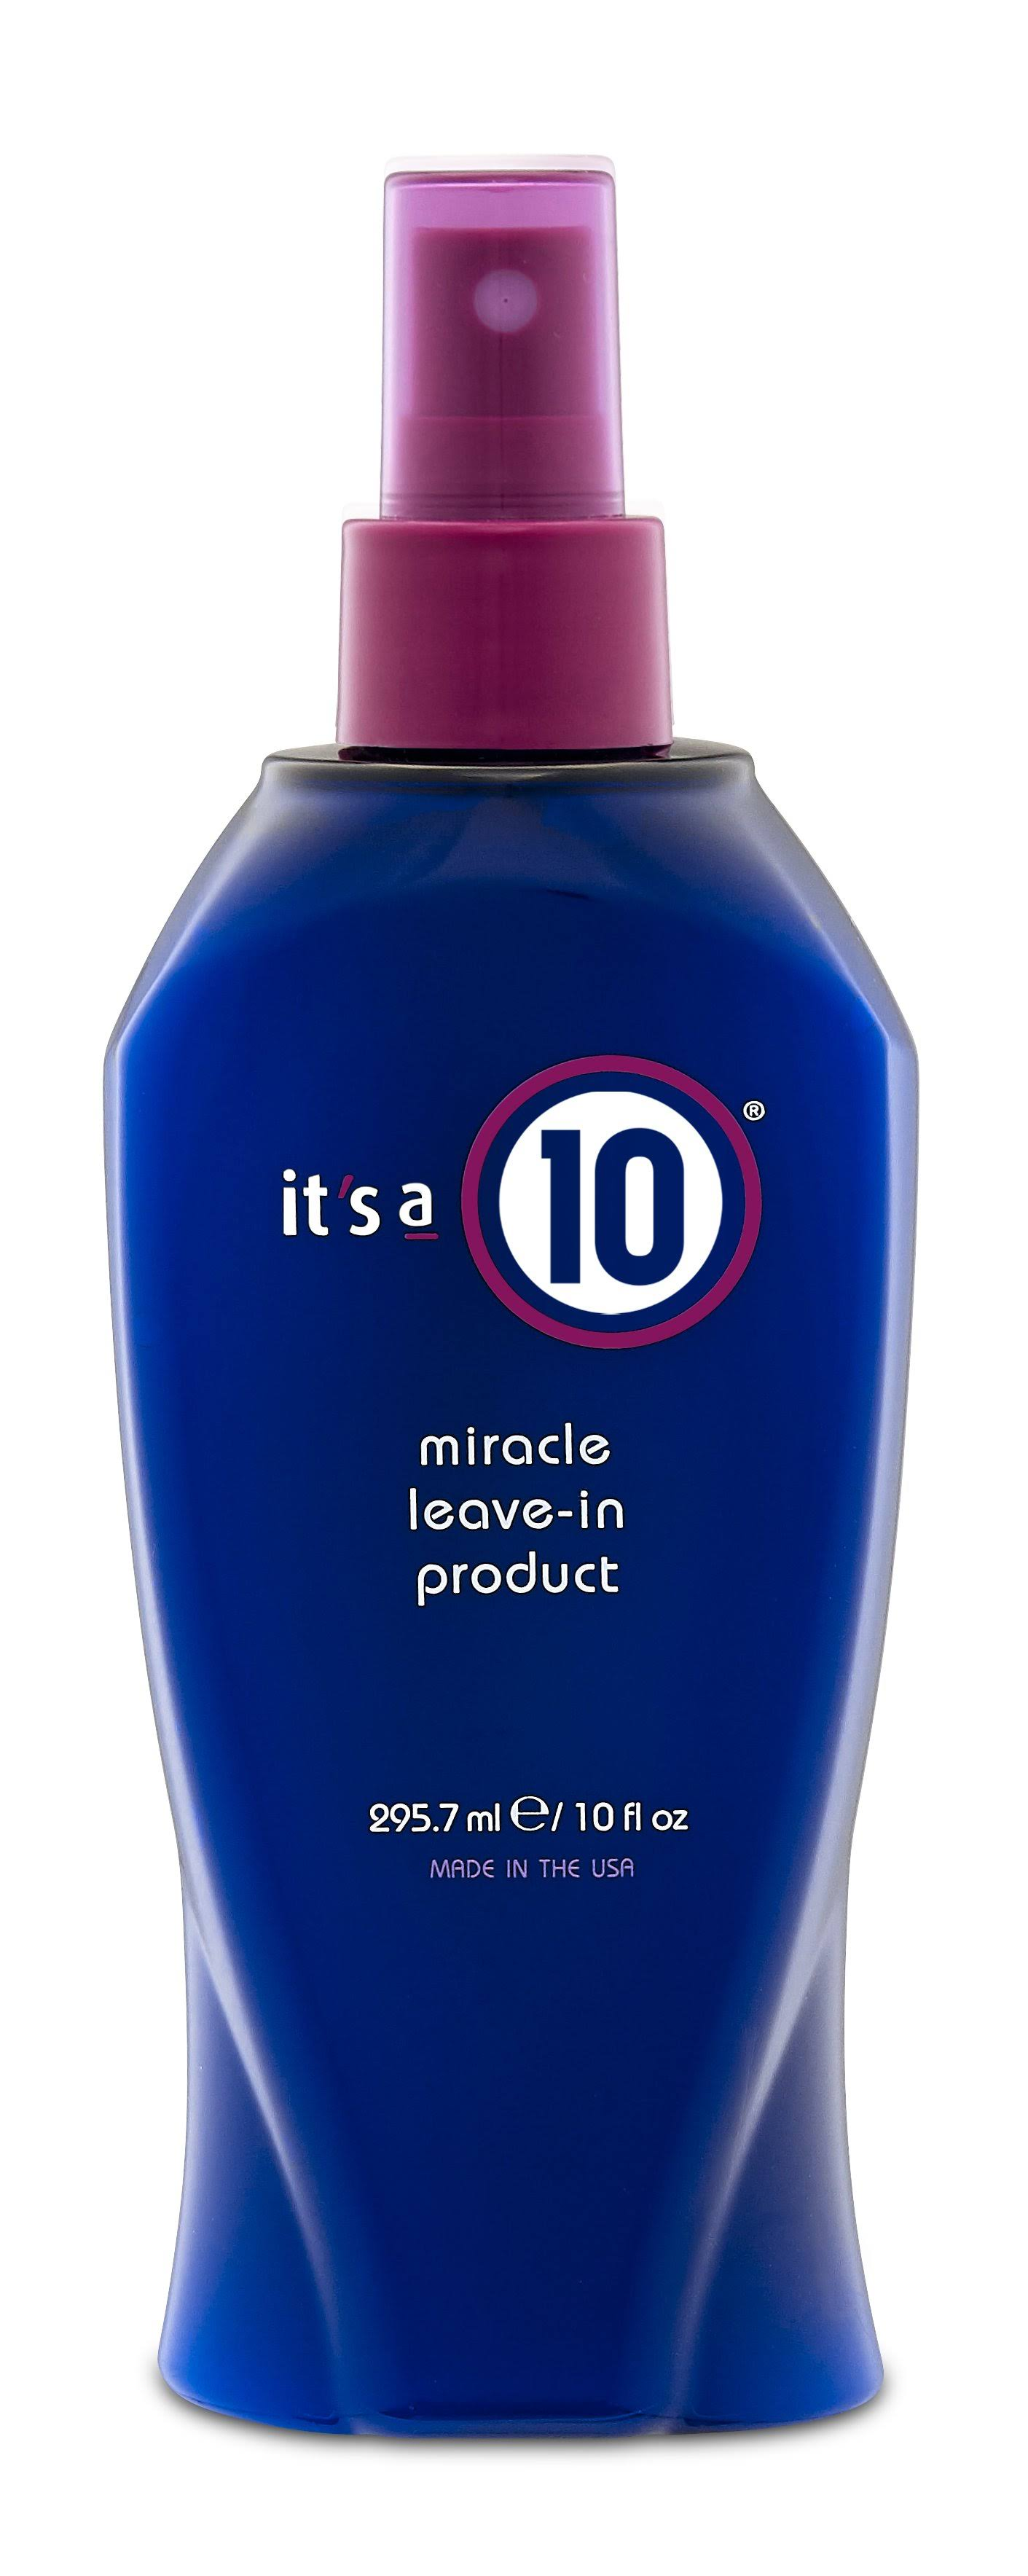 It's a 10 Miracle Leave In Product - 300ml